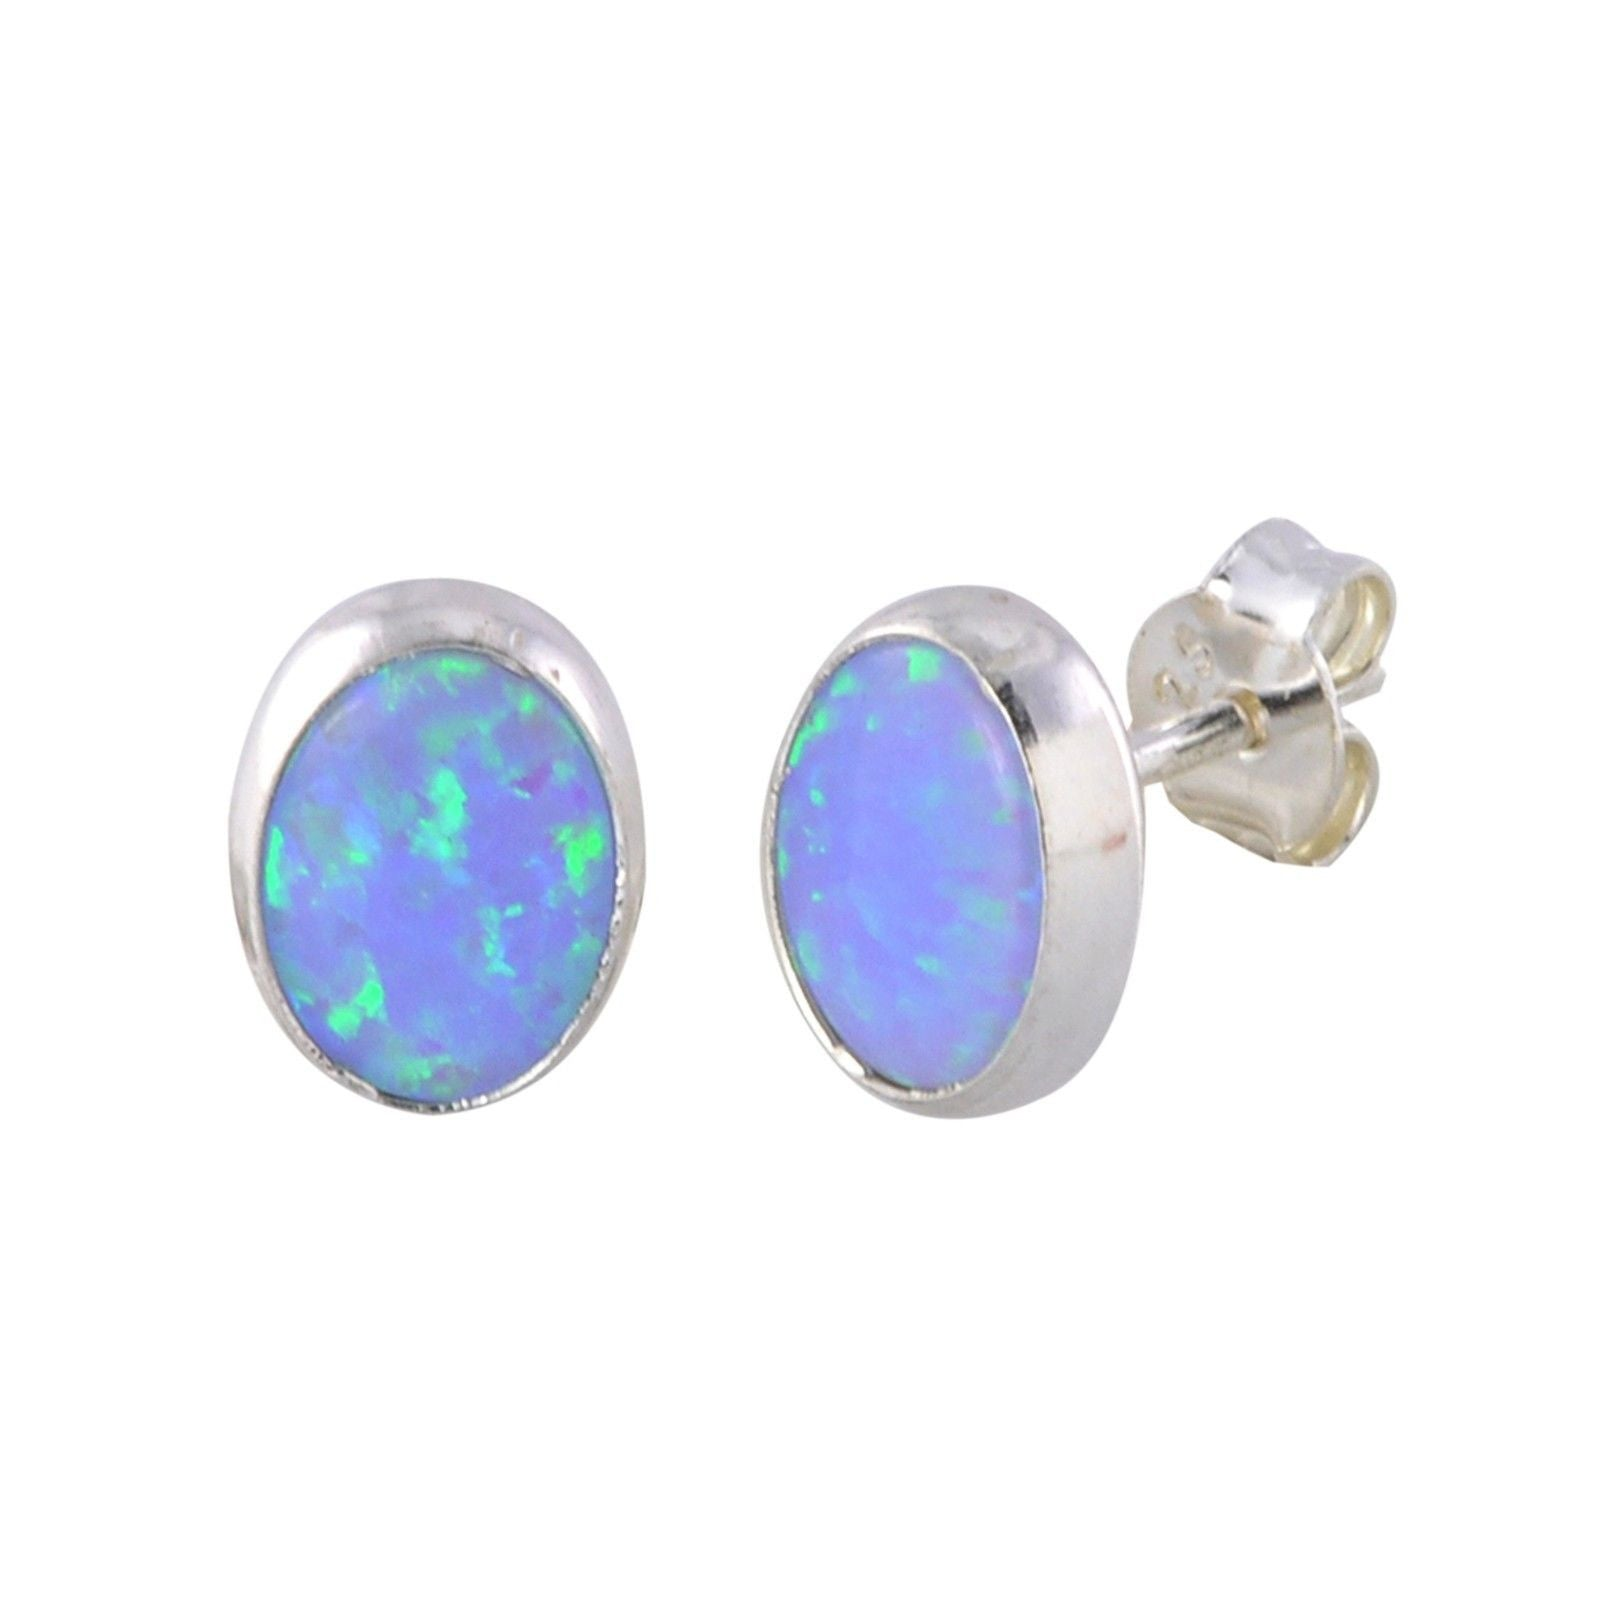 oval natural stone big unset large flashopal opal sale for stones gemstone white